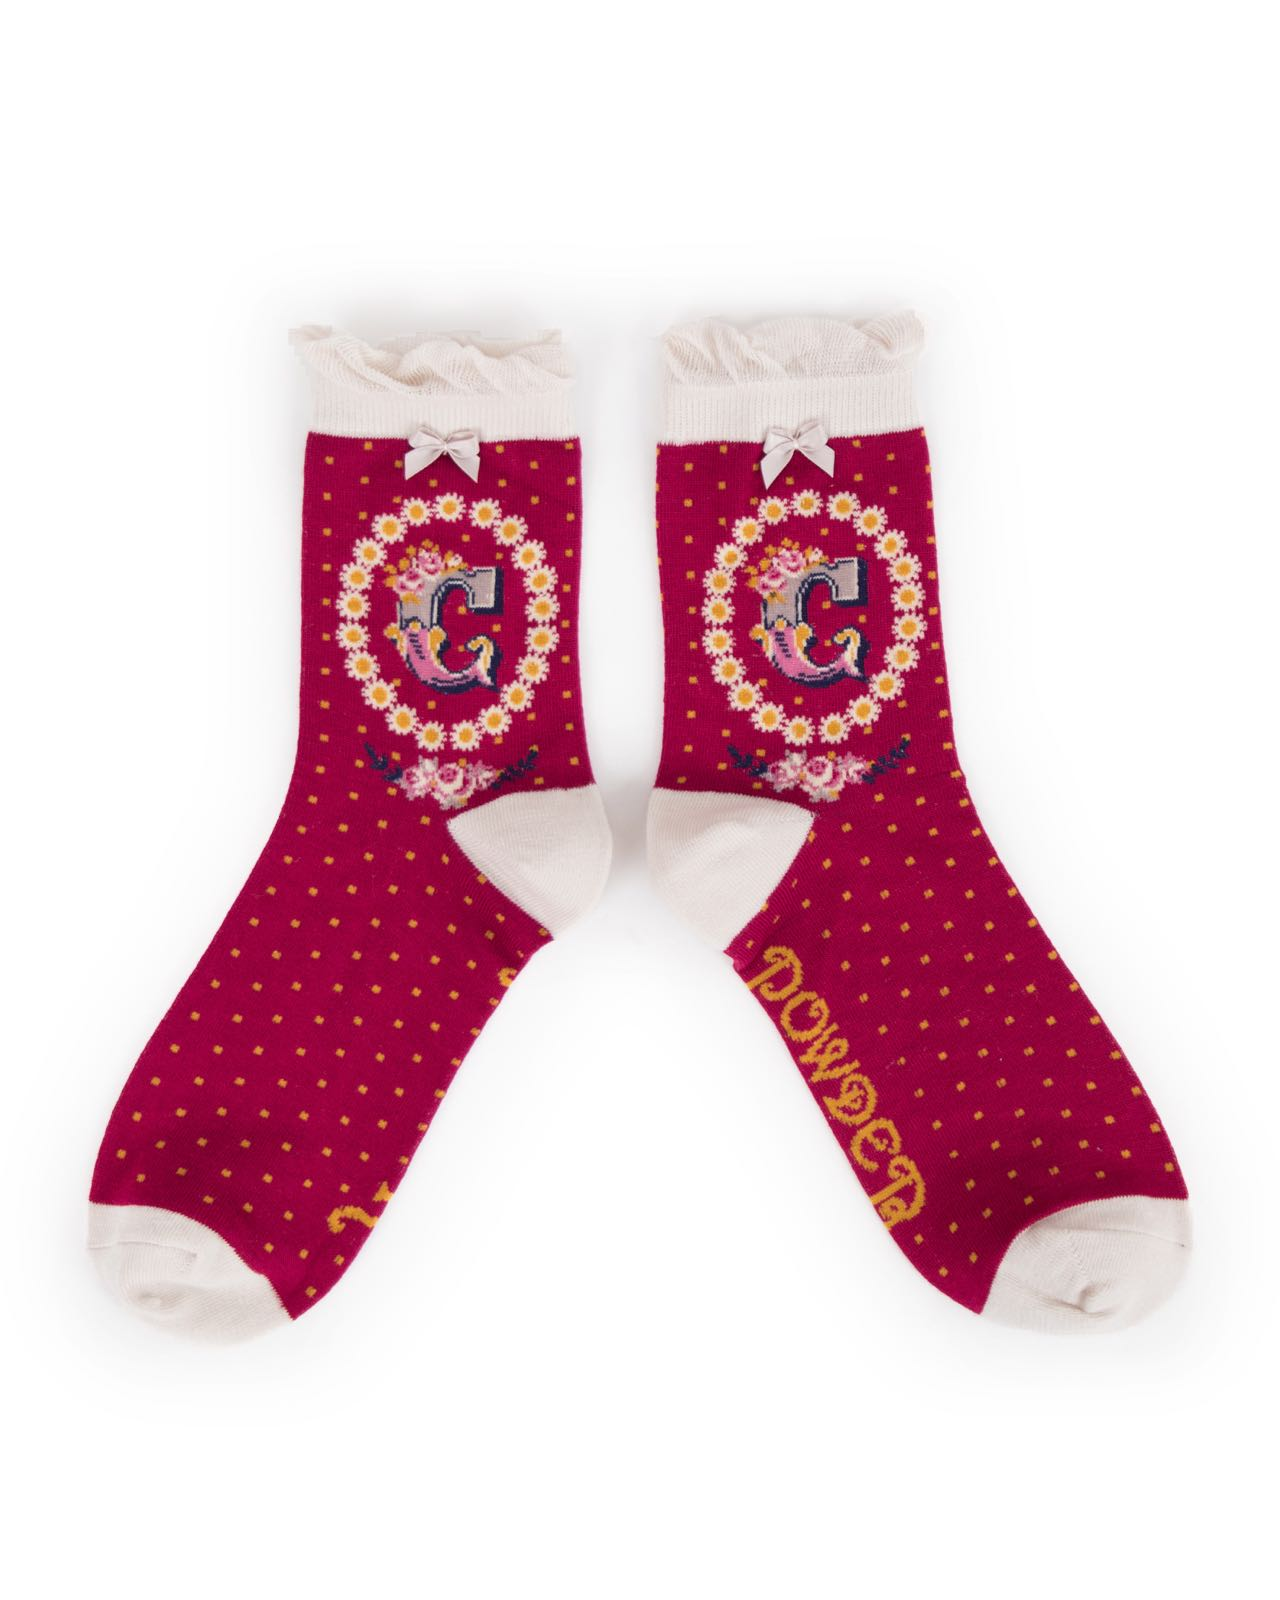 Powder Alphabet socks C (product may differ from item shown in the photo)